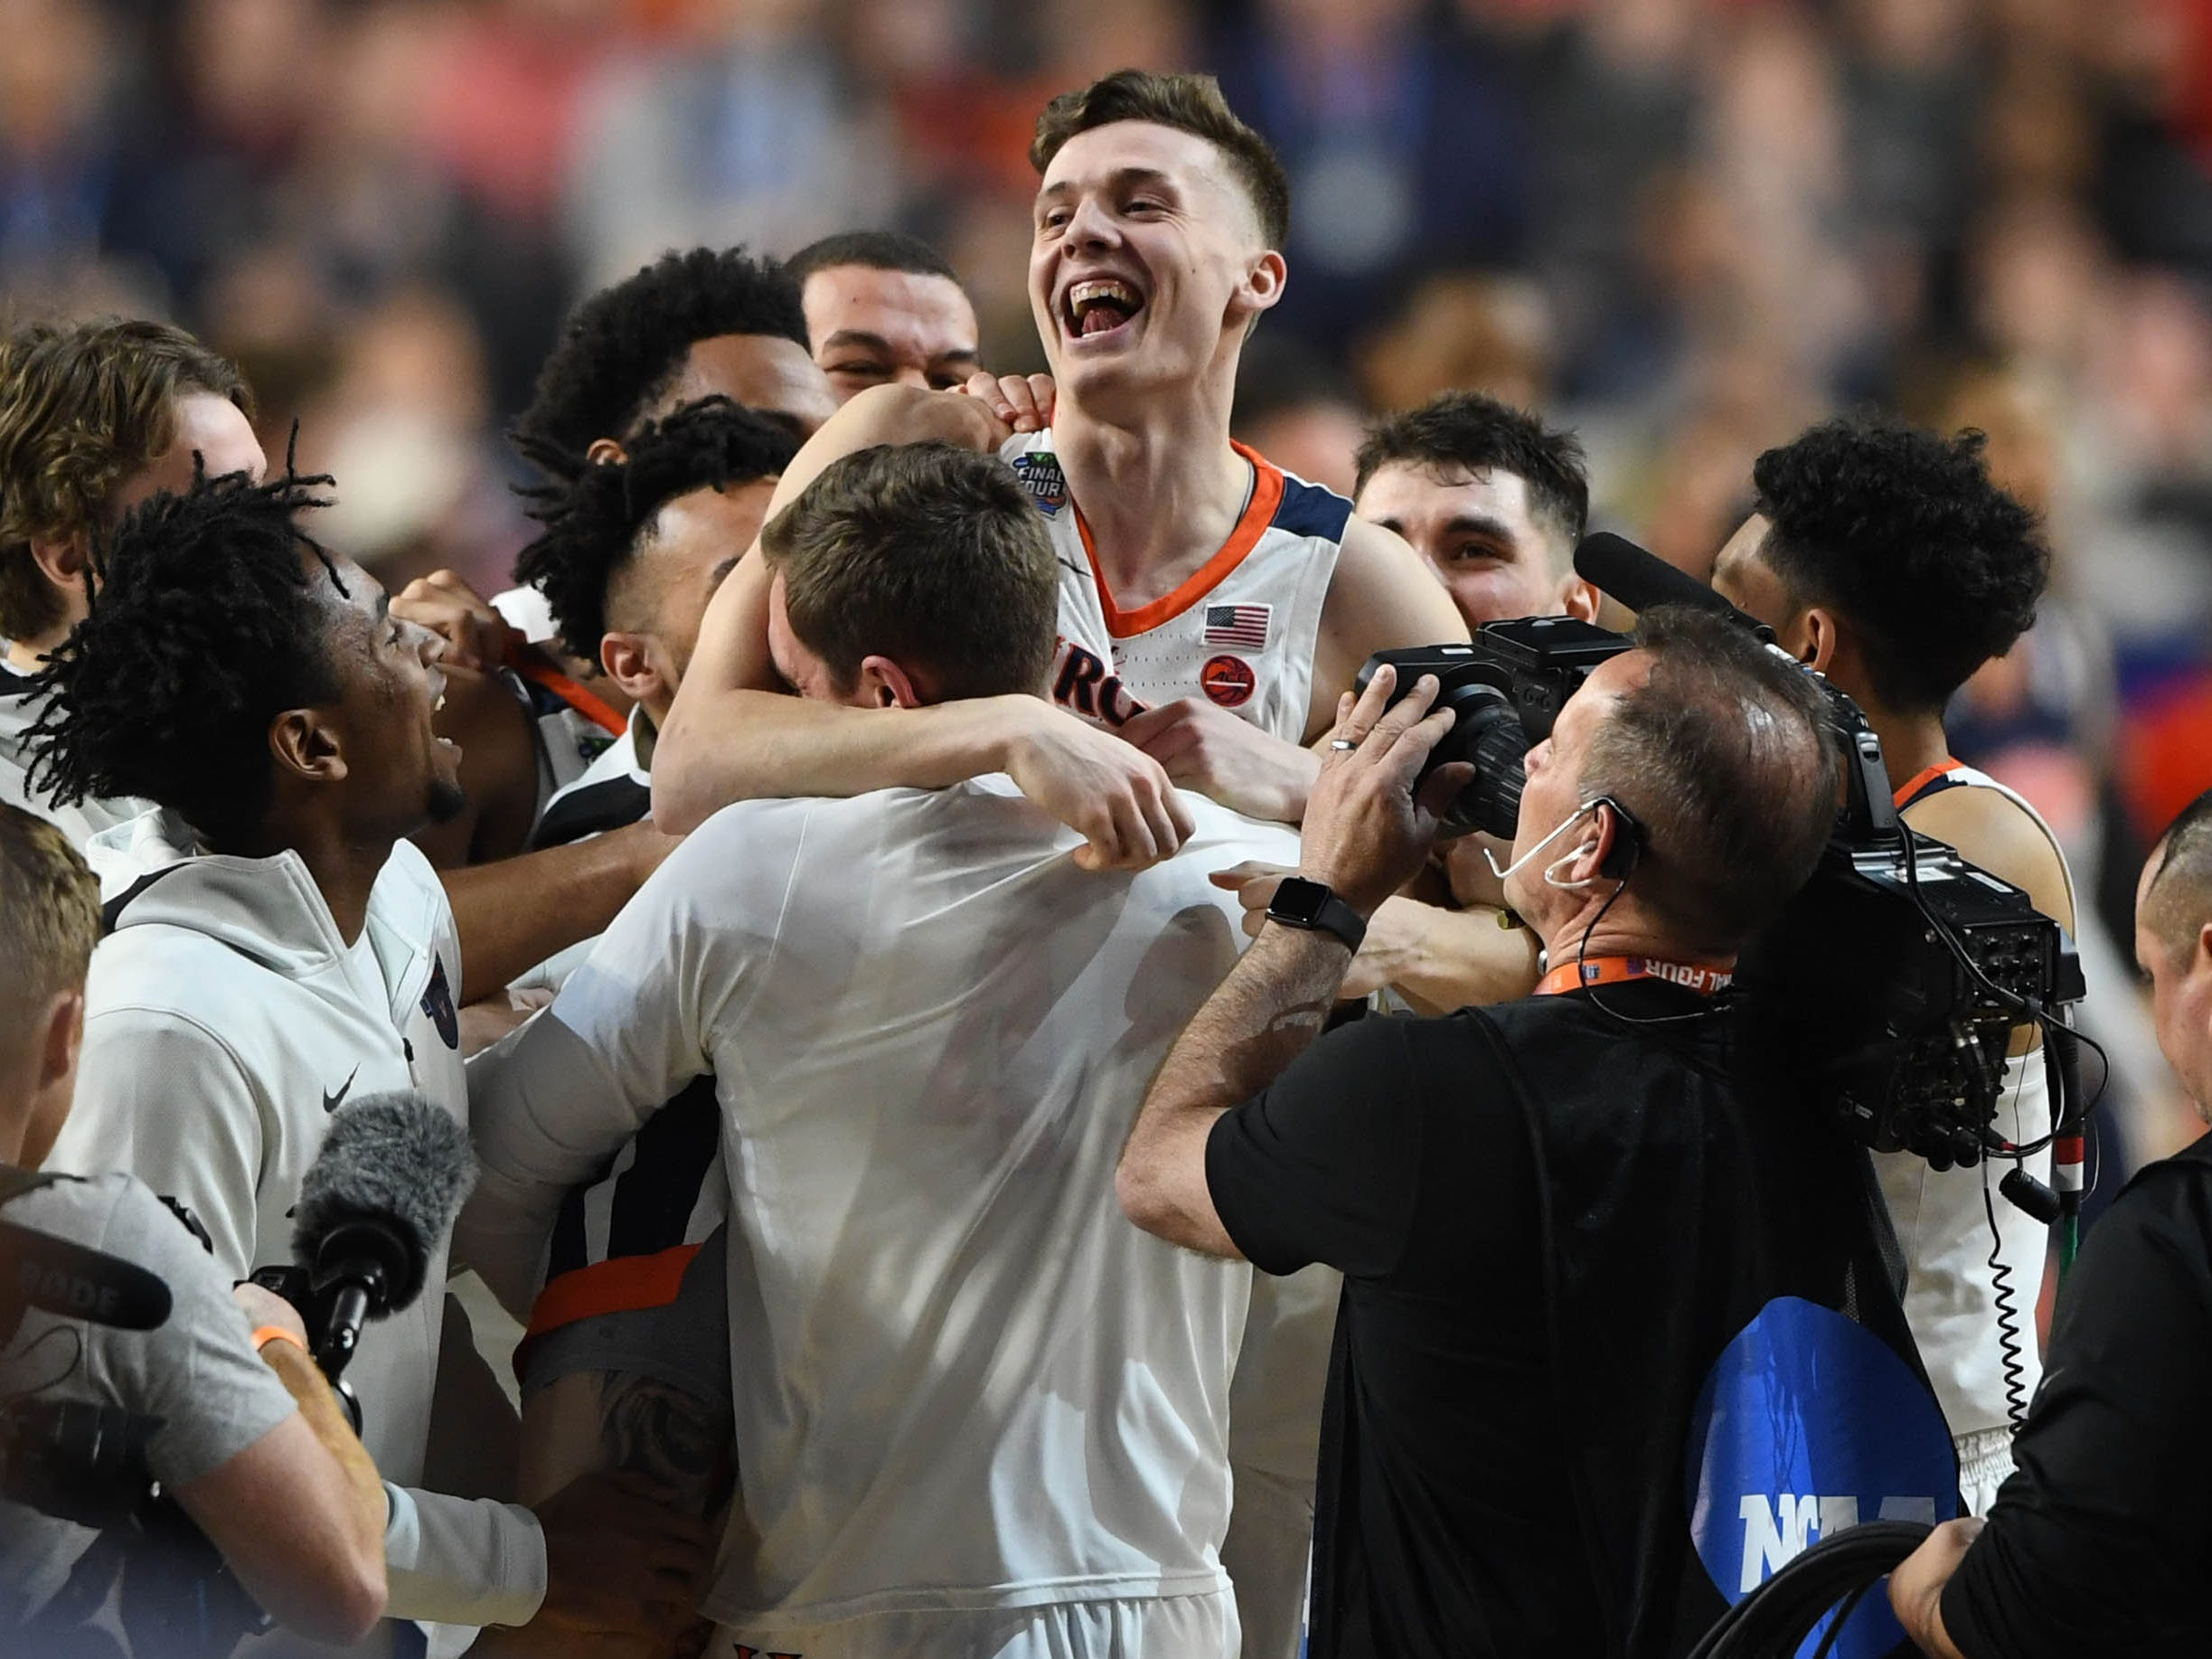 Virginia Cavaliers guard Kyle Guy celebrates after defeating the Auburn Tigers in their Final Four game.